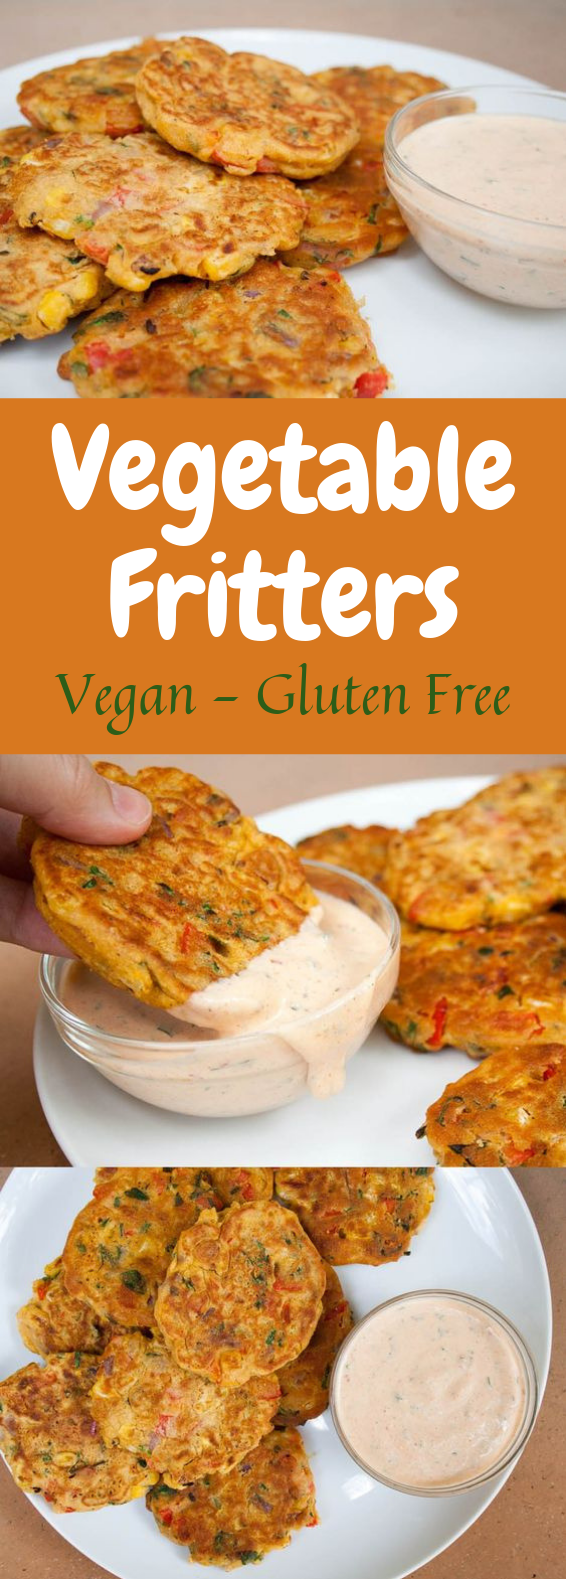 THE MOST AMAZING VEGETABLE FRITTERS #Vegetarian #Meal